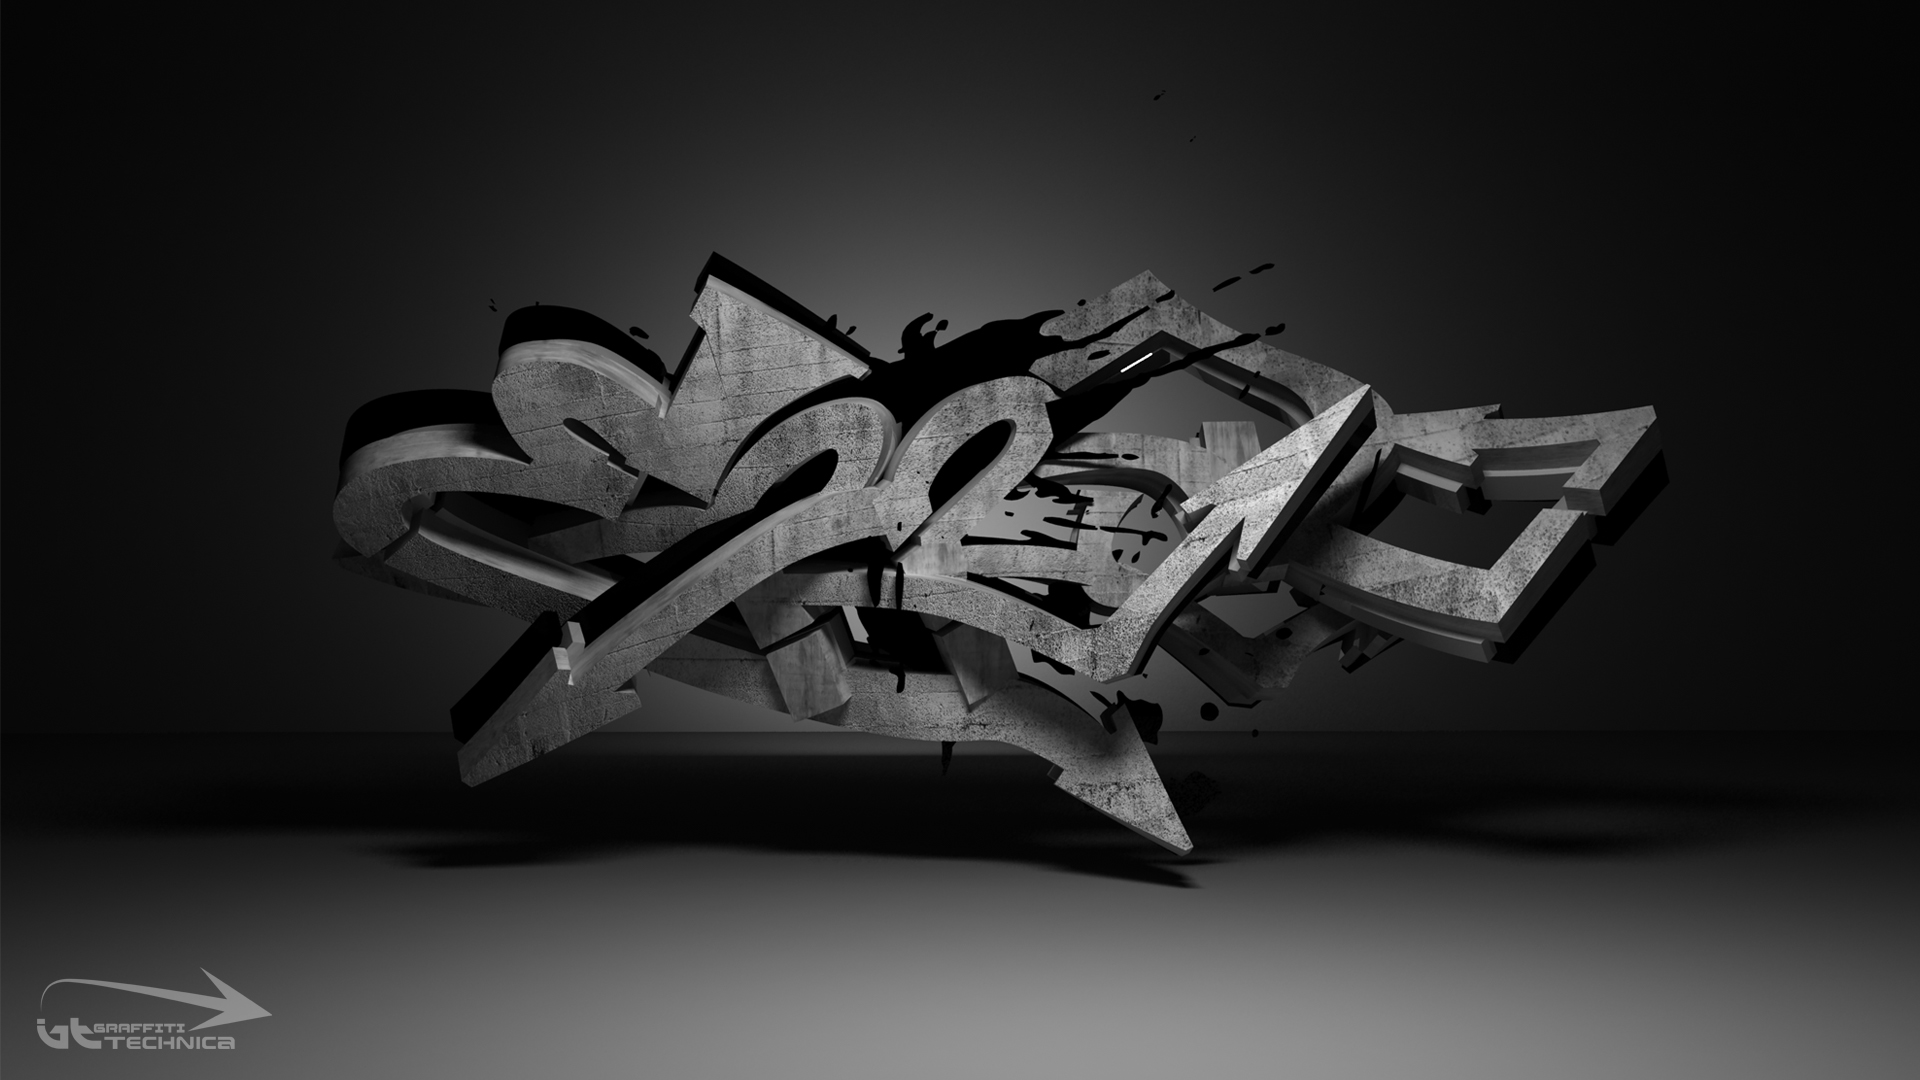 graffiti 3D y arte digital